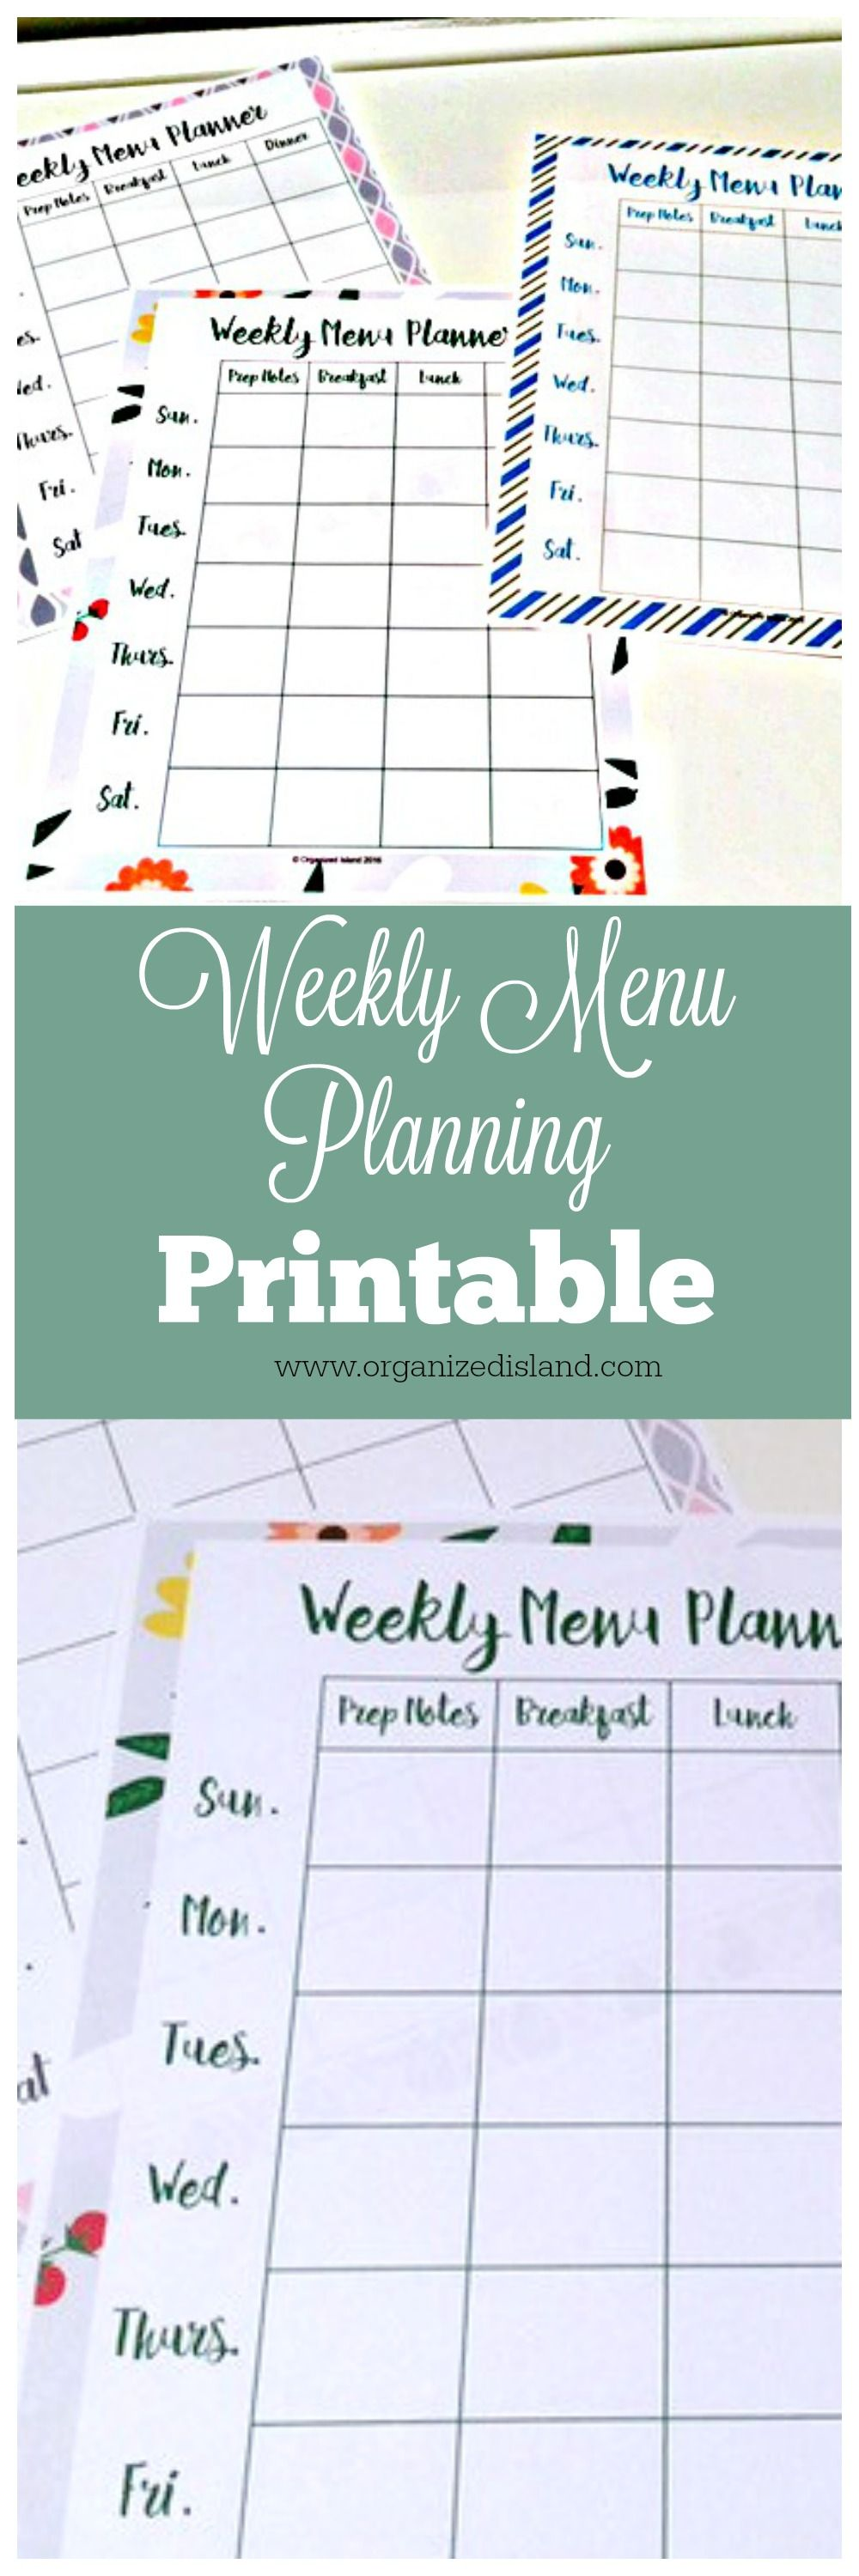 Menu Planning Template   Menu Planning Templates Weekly Menu